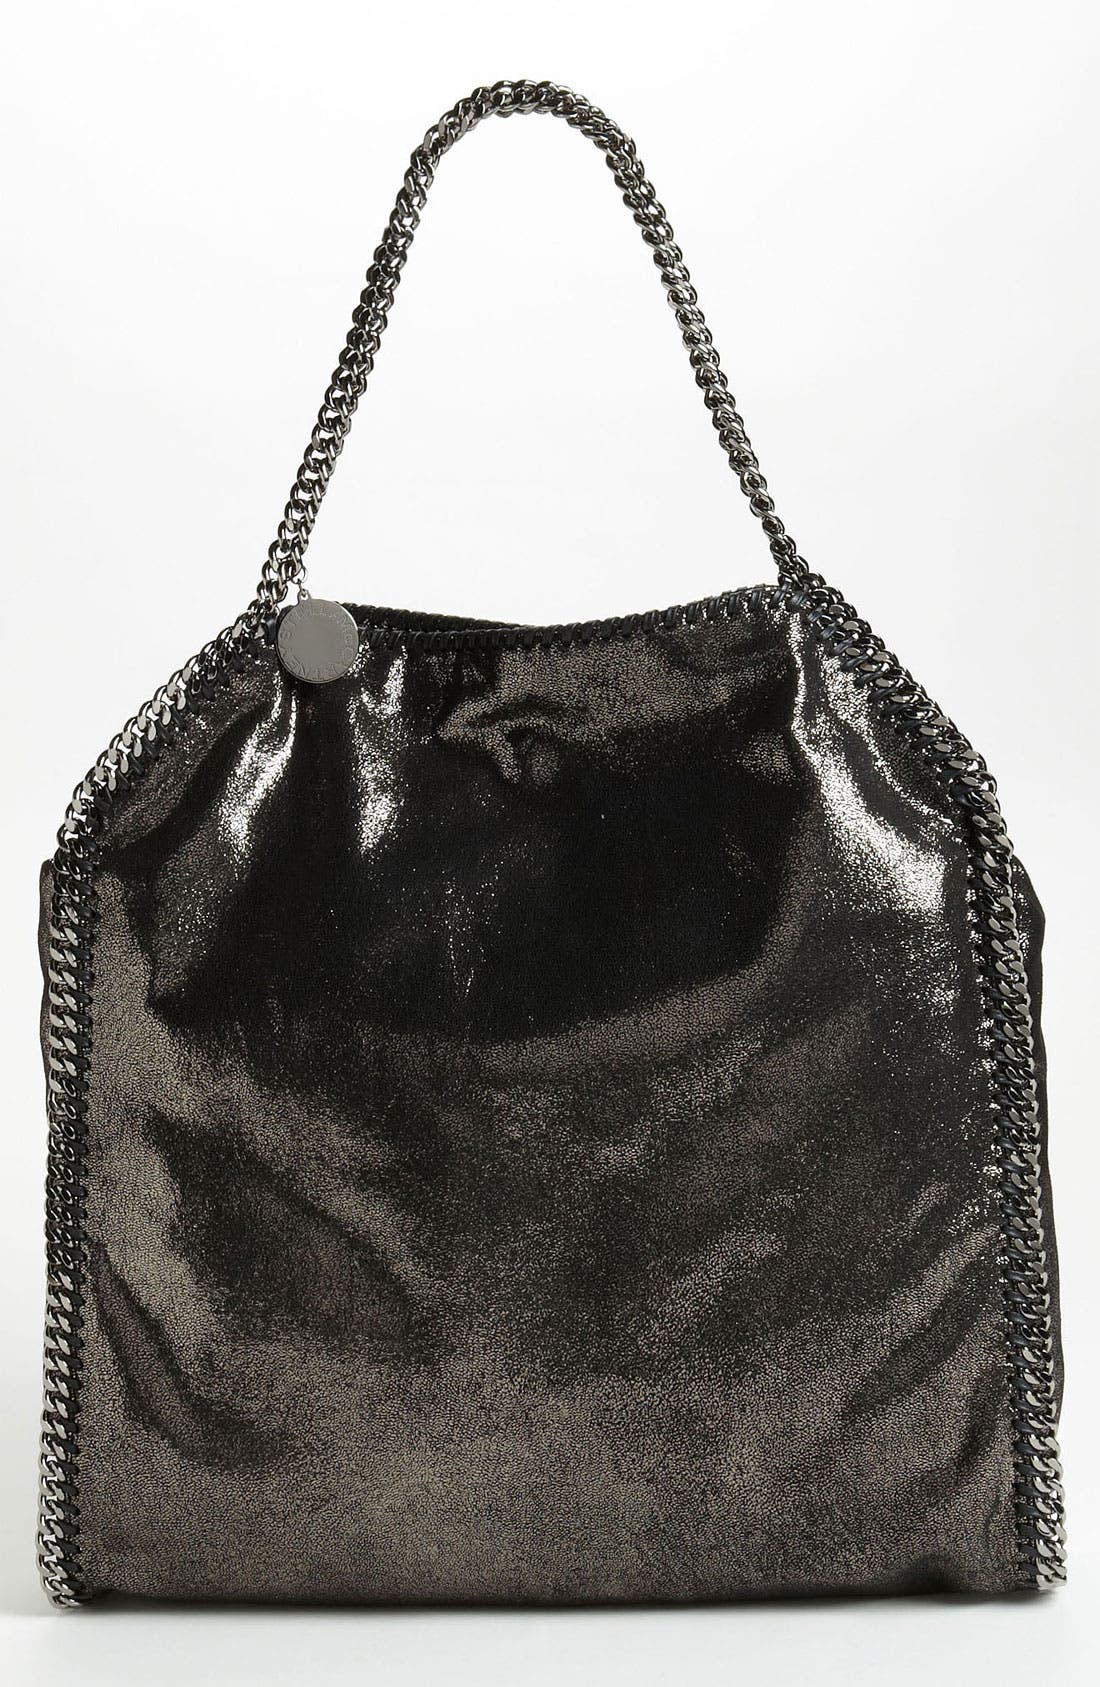 Main Image - Stella McCartney 'Falabella - Large' Metallic Tote